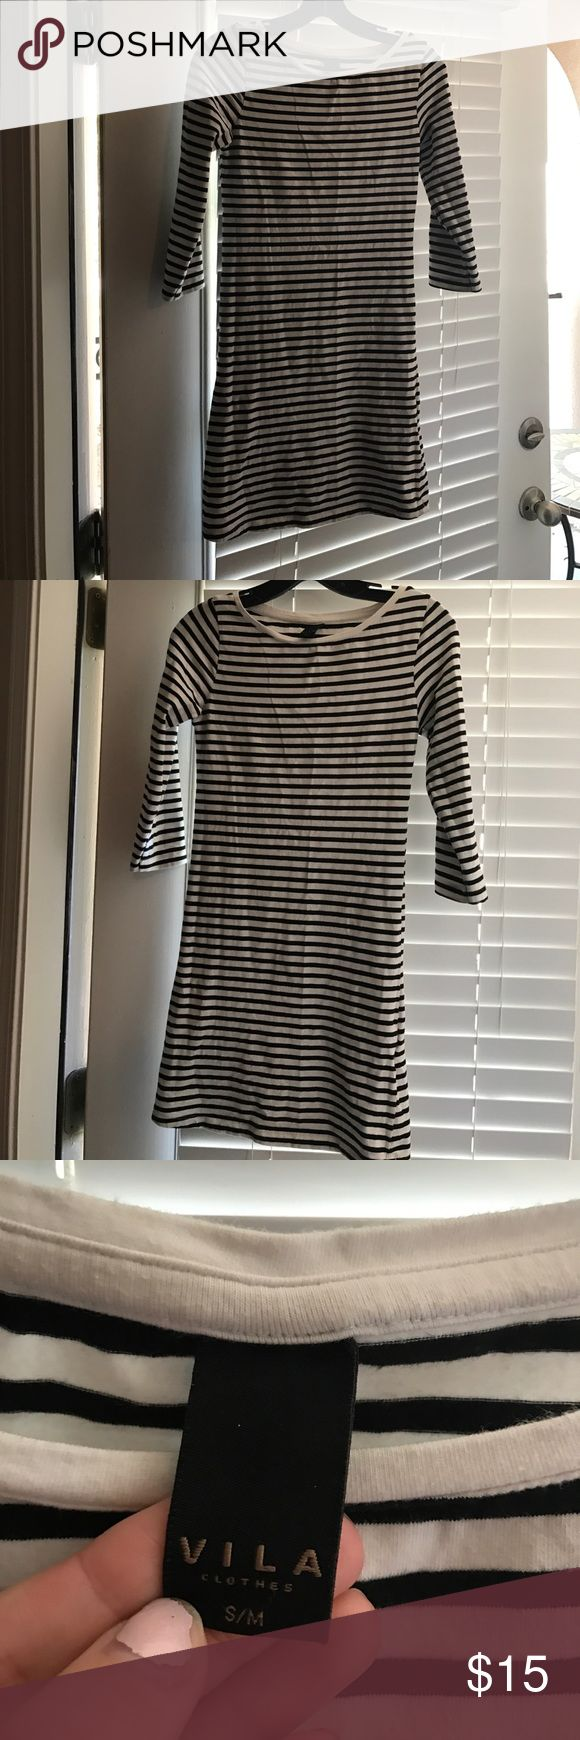 Villa nautical black & white stripe mini dress Super cute dress! Can be worn with wedges or sandals for the perfect summer look! Villa Dresses Mini